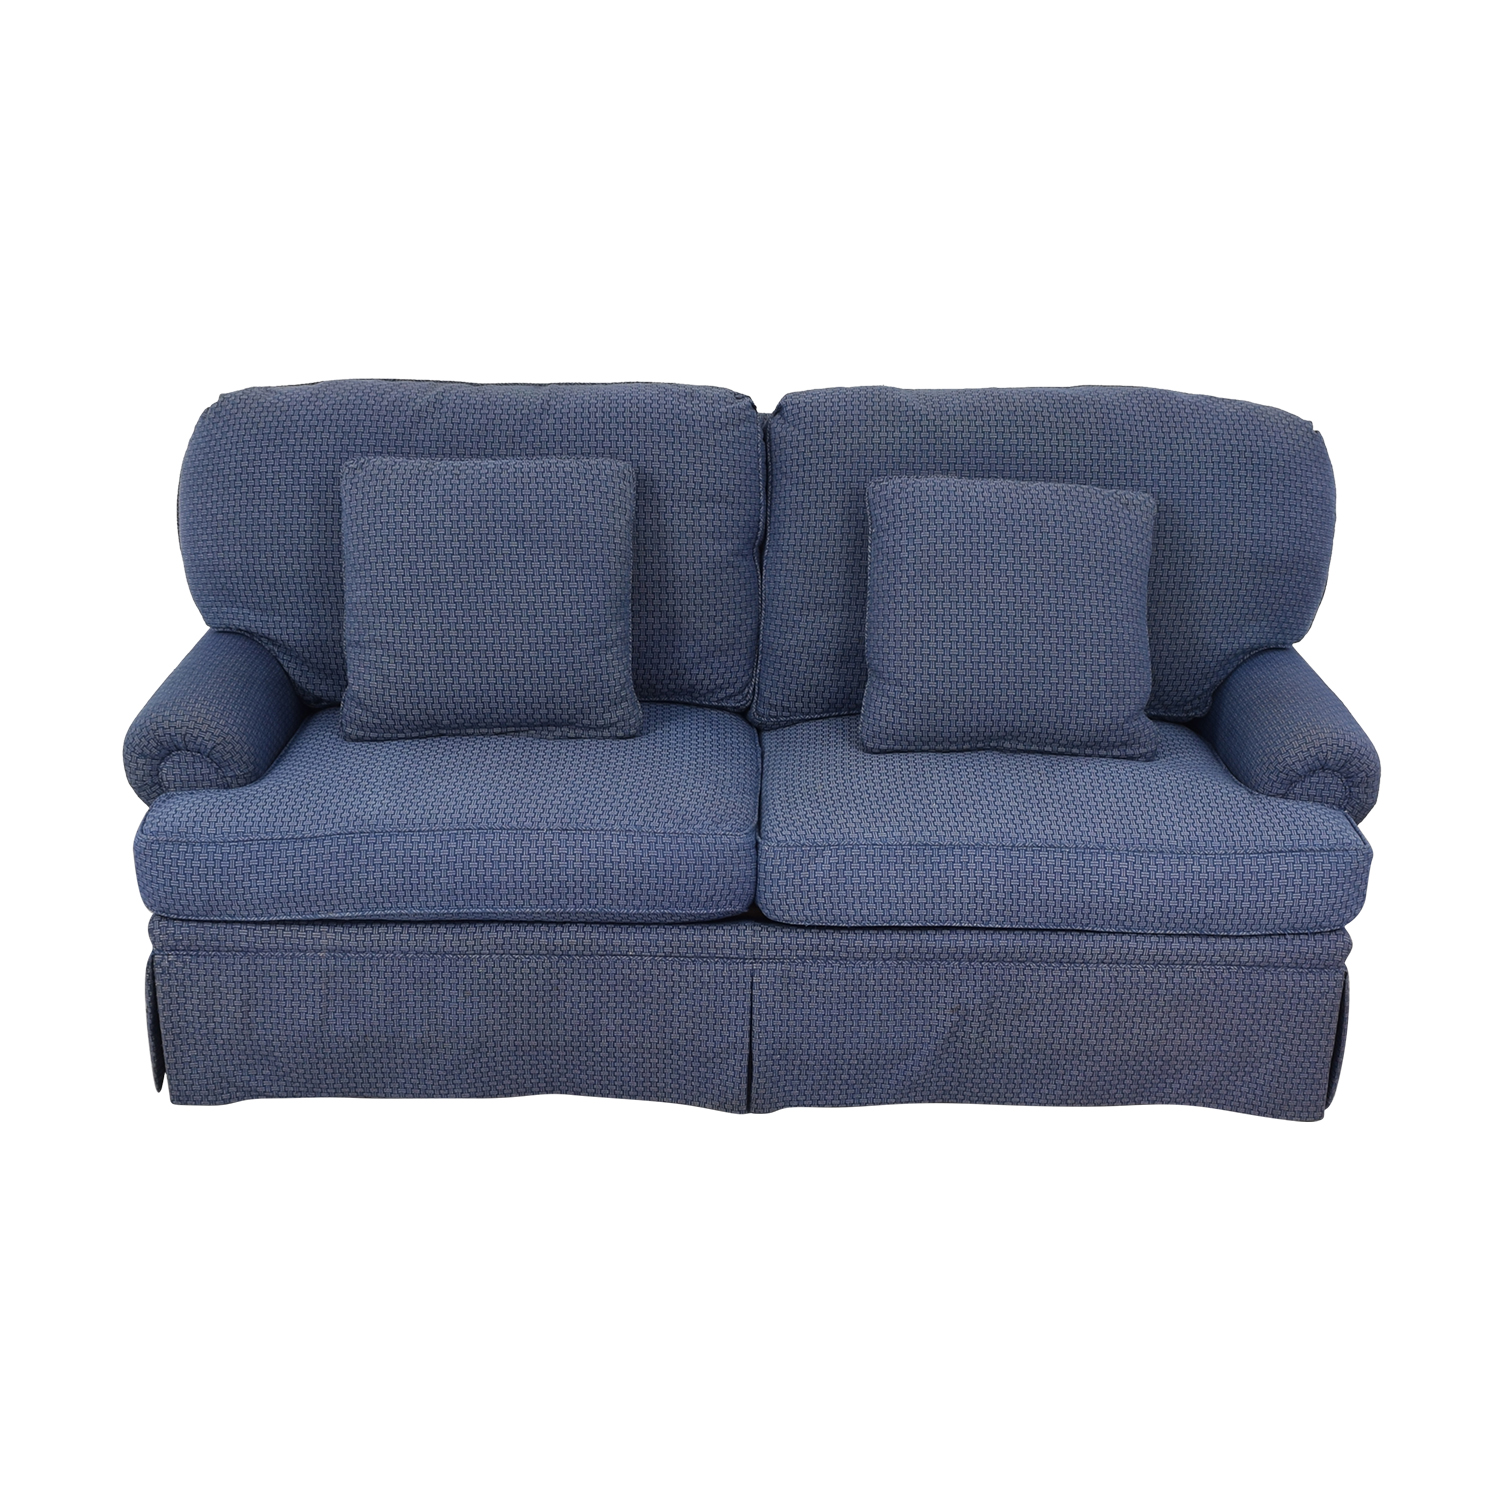 shop Calico Calico Classic Home Recessed Panel Arm Blue Down-Filled Sofa online